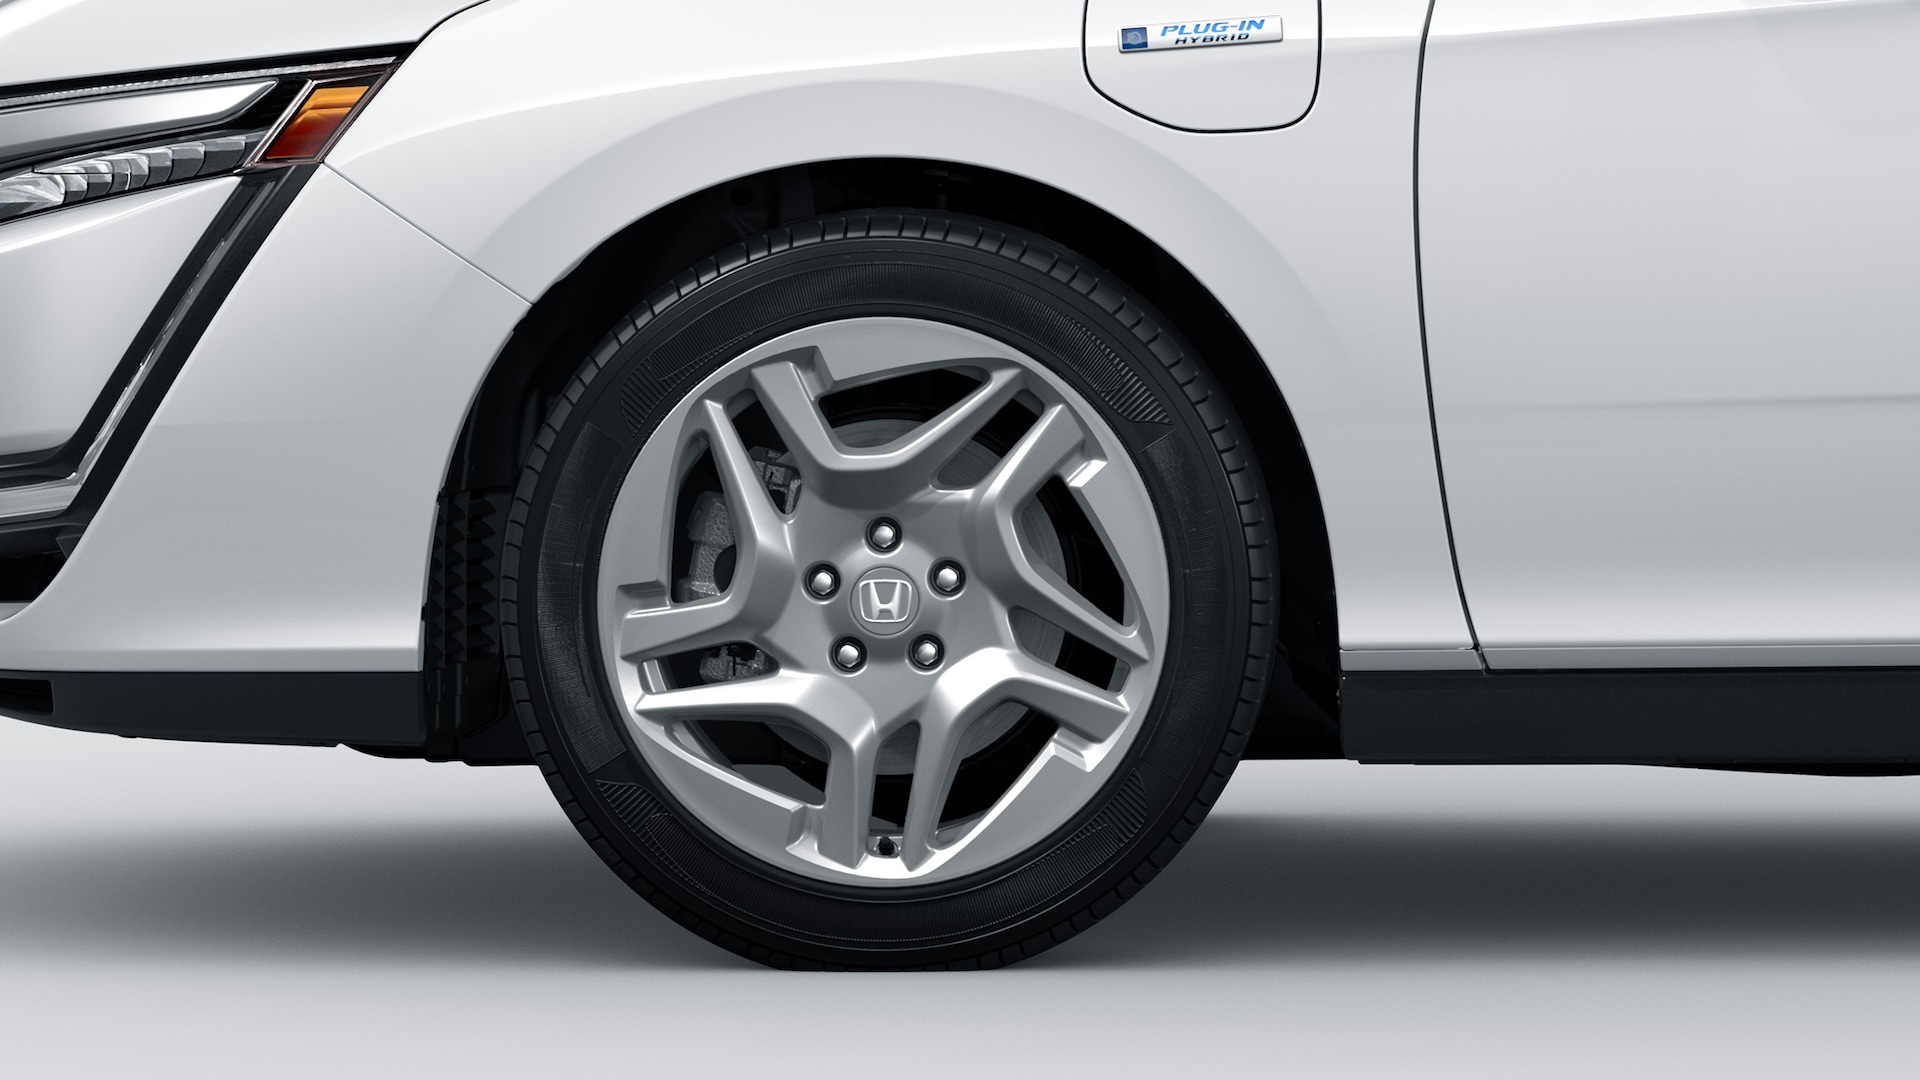 Honda Genuine Accessories 18-inch accessory alloy wheel.